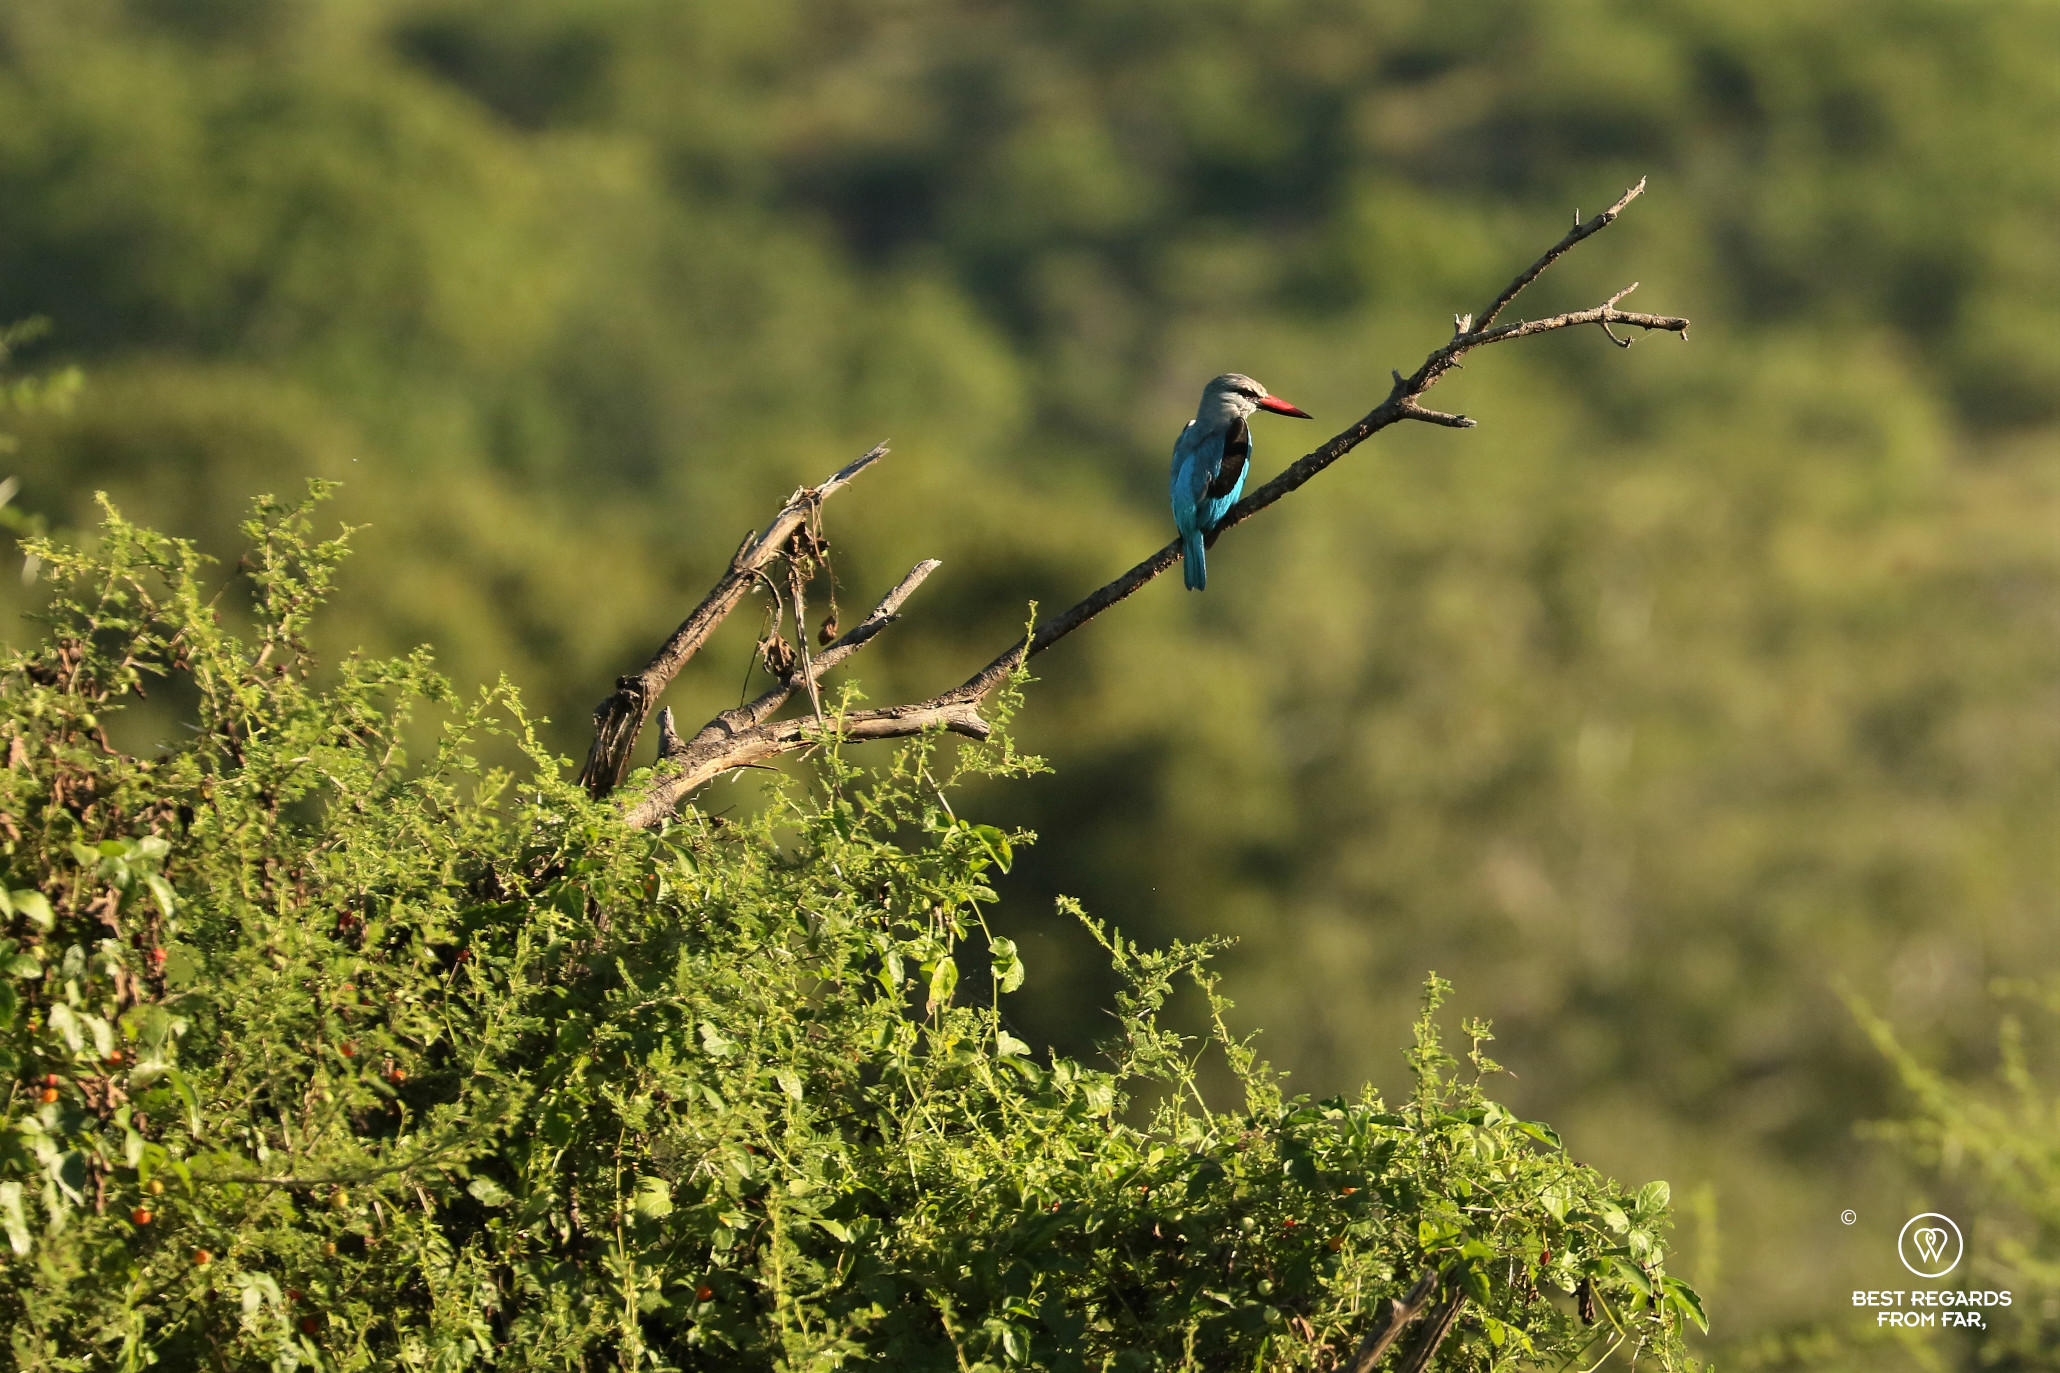 A blue woodland kingfisher seating on a dead branch in Makuleke, Kruger Park, South Africa